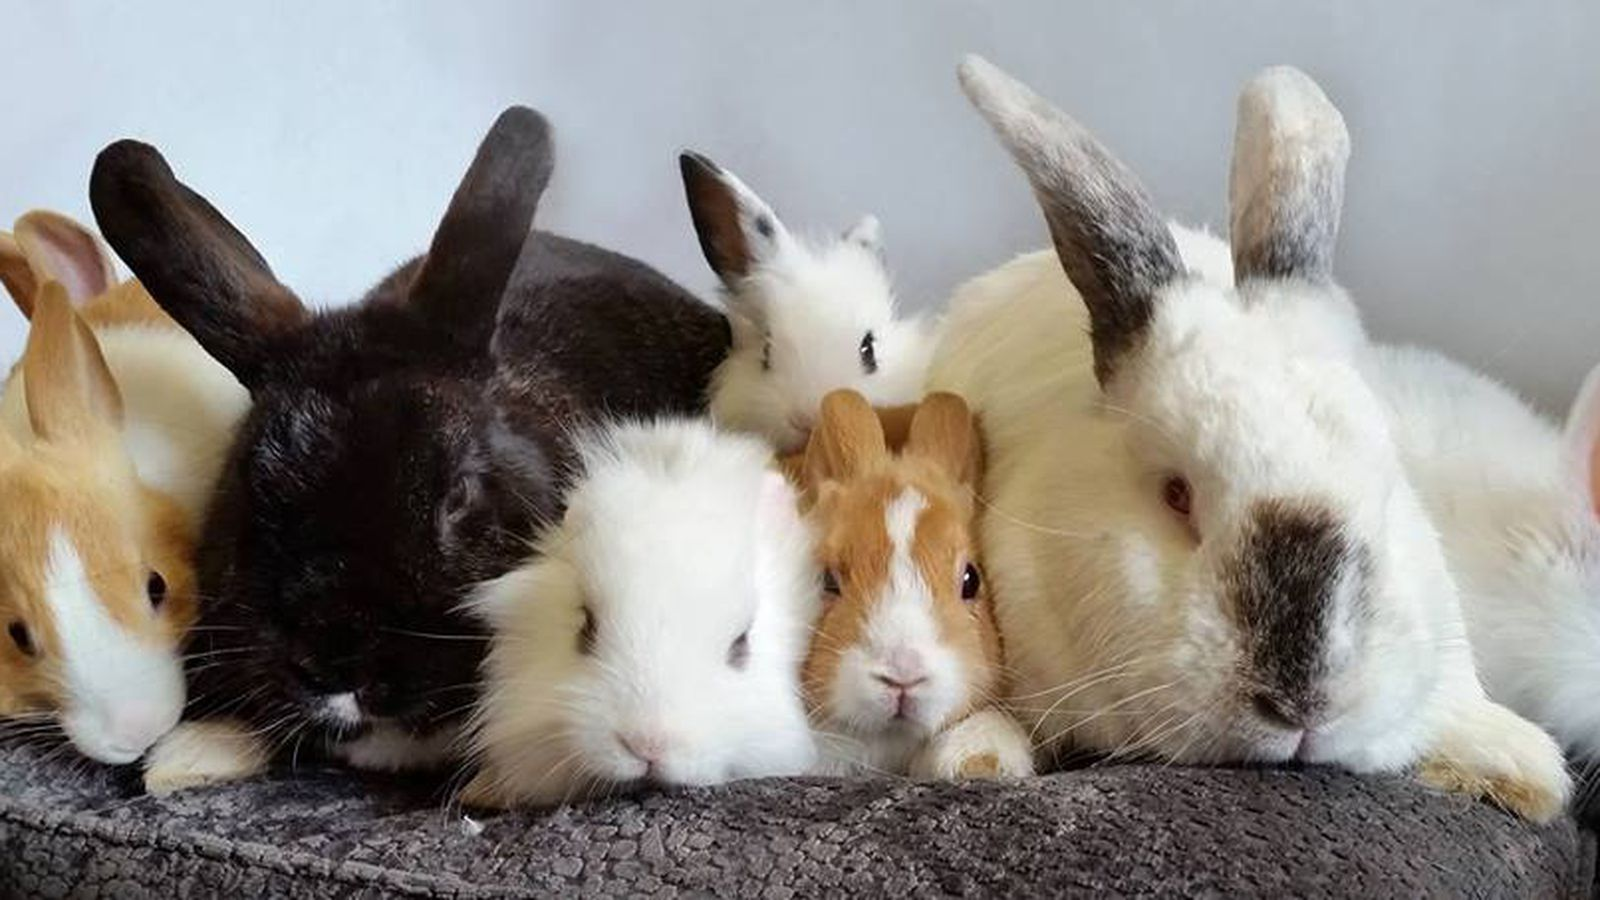 Fluffy Bunnies Are the Star of London's Latest Pop-Up ...